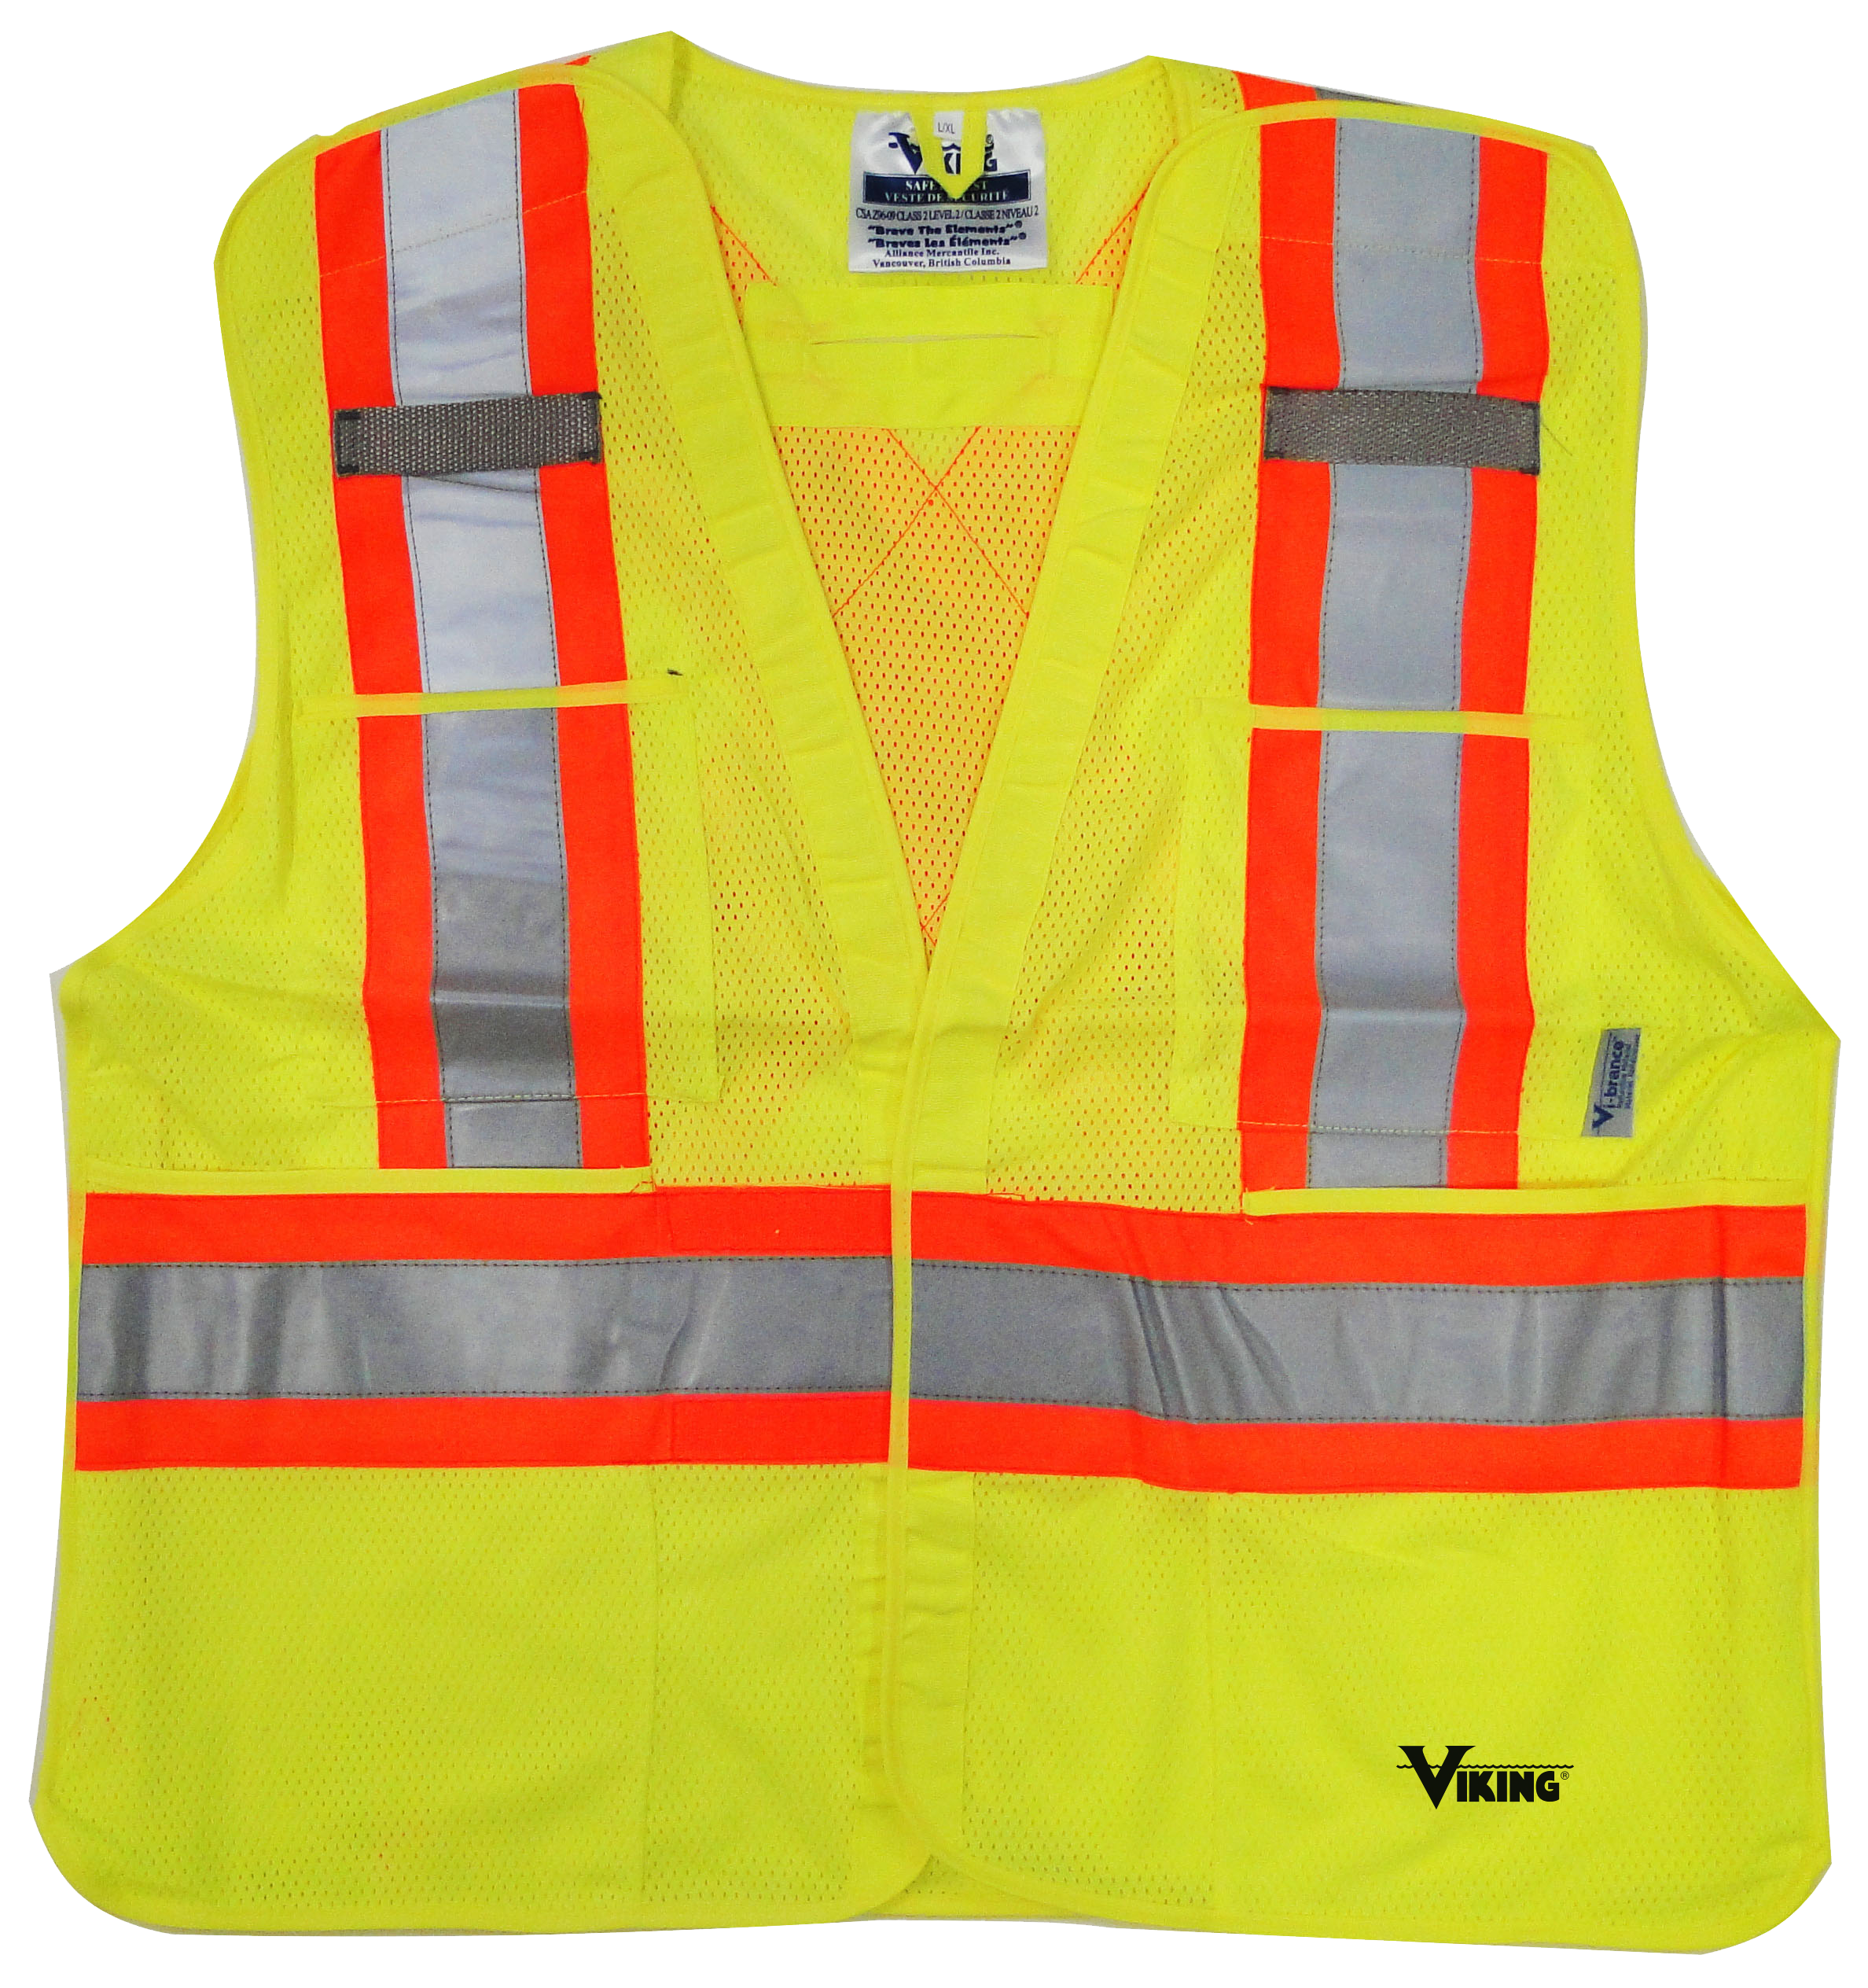 Safety Clothing Efficient Reflective Vest Breathable Mesh Multi Pockets Construction Traffic Safety Protective Jacket Fluorescent Clothes Work Clothing Workplace Safety Supplies